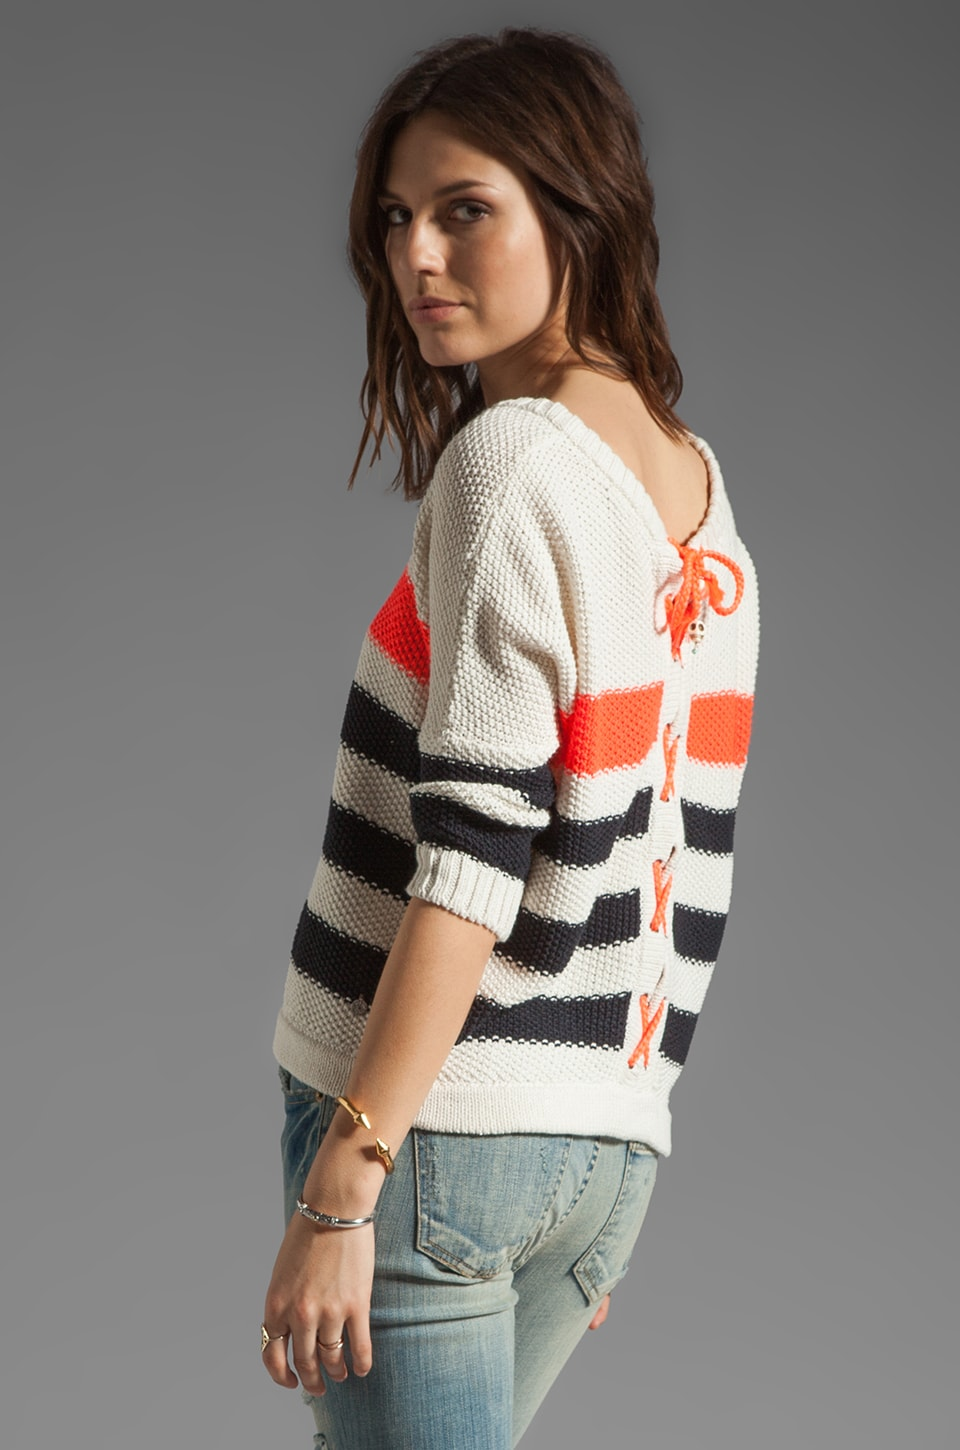 Maison Scotch Stripe Knit Sweater in Cream